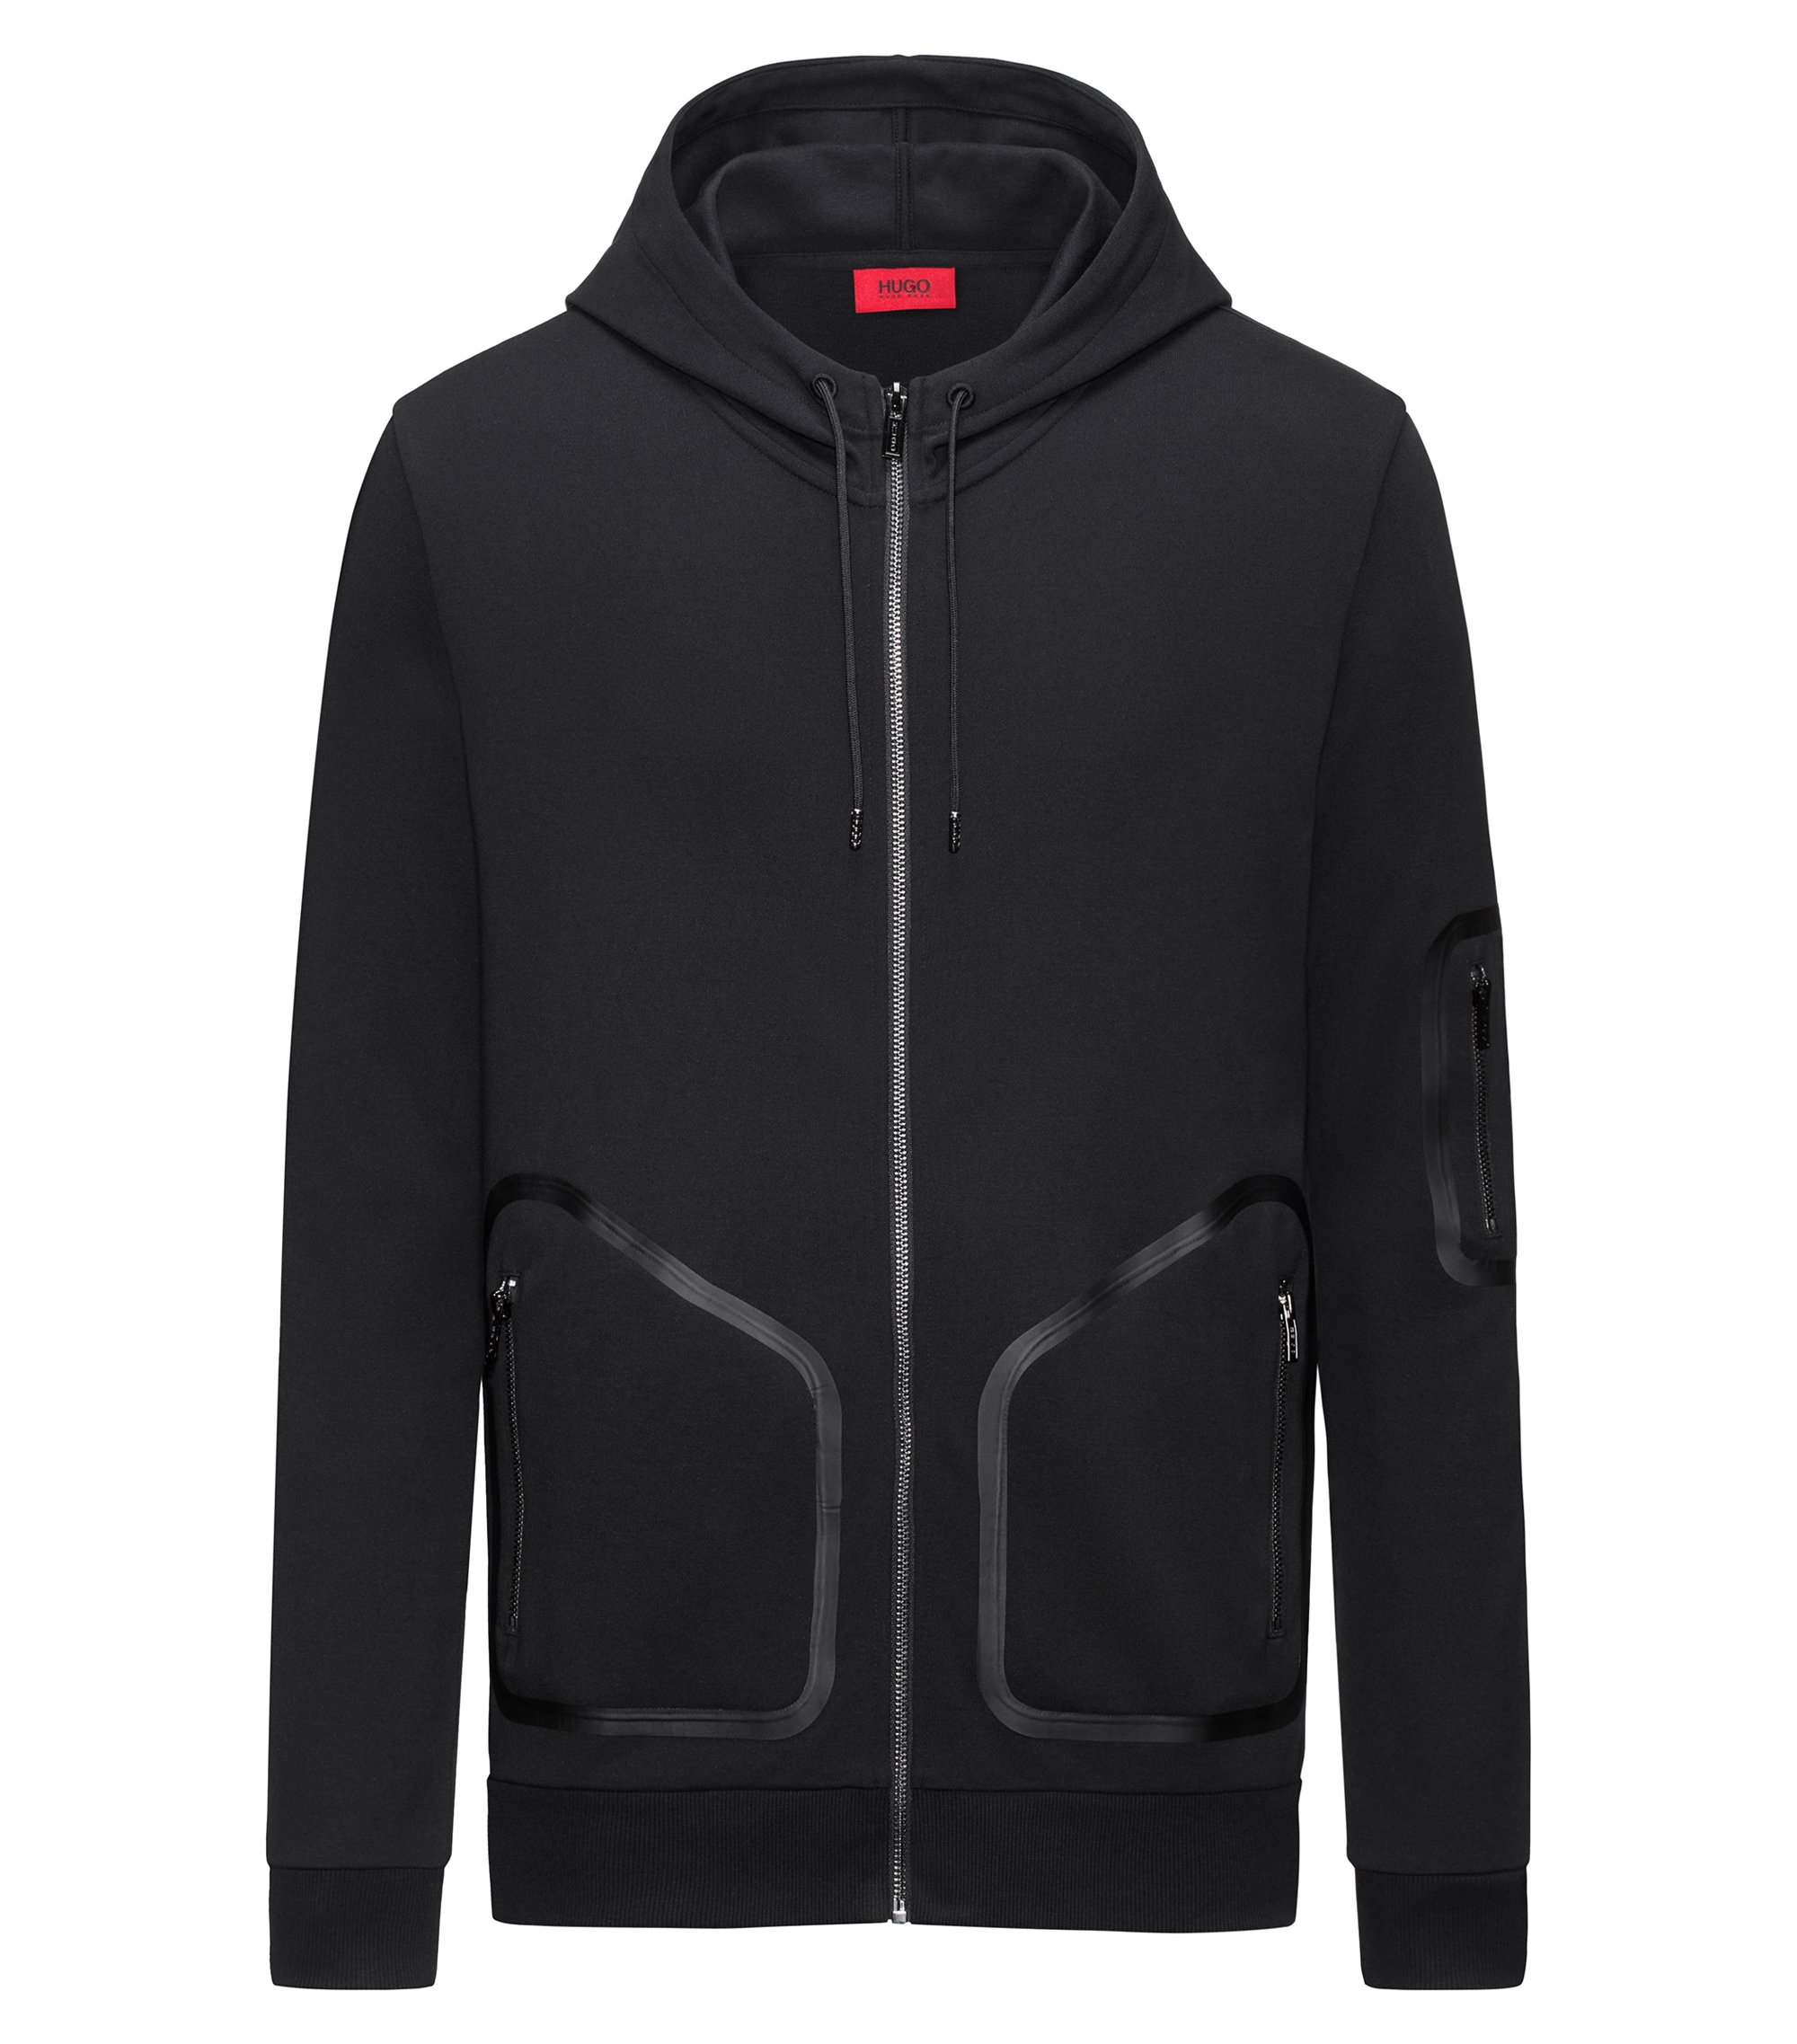 Veste zippée Relaxed Fit, en coton interlock, Noir